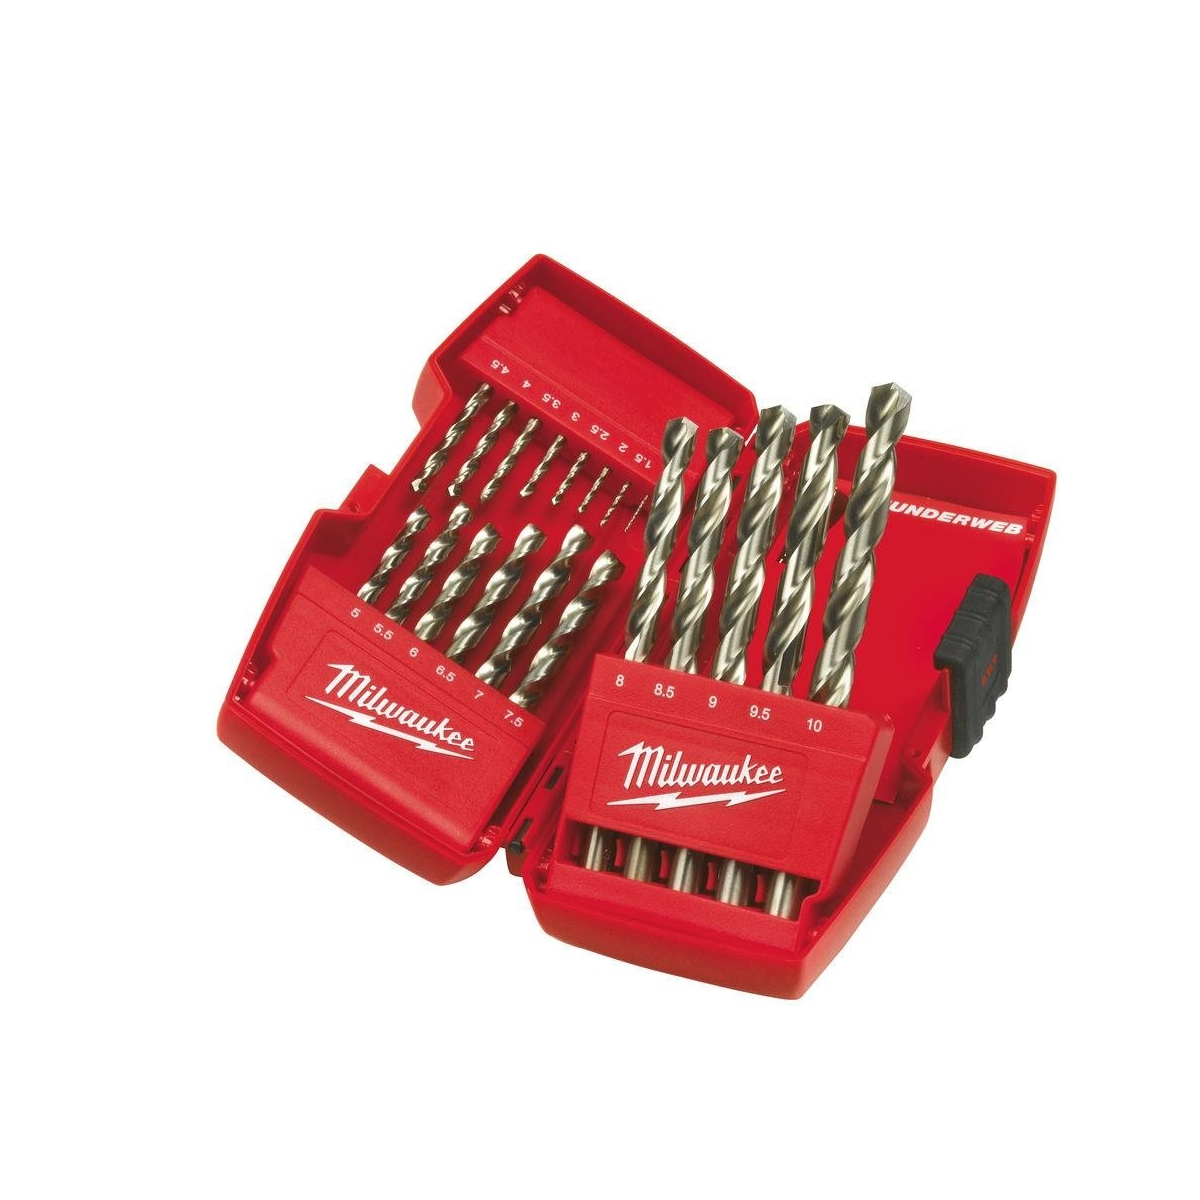 WIERTŁA NWKA 1.0-10.0MM 19SZT MILWAUKEE WIERTŁA NWKA 1.0-10.0MM 19SZT MILWAUKEE